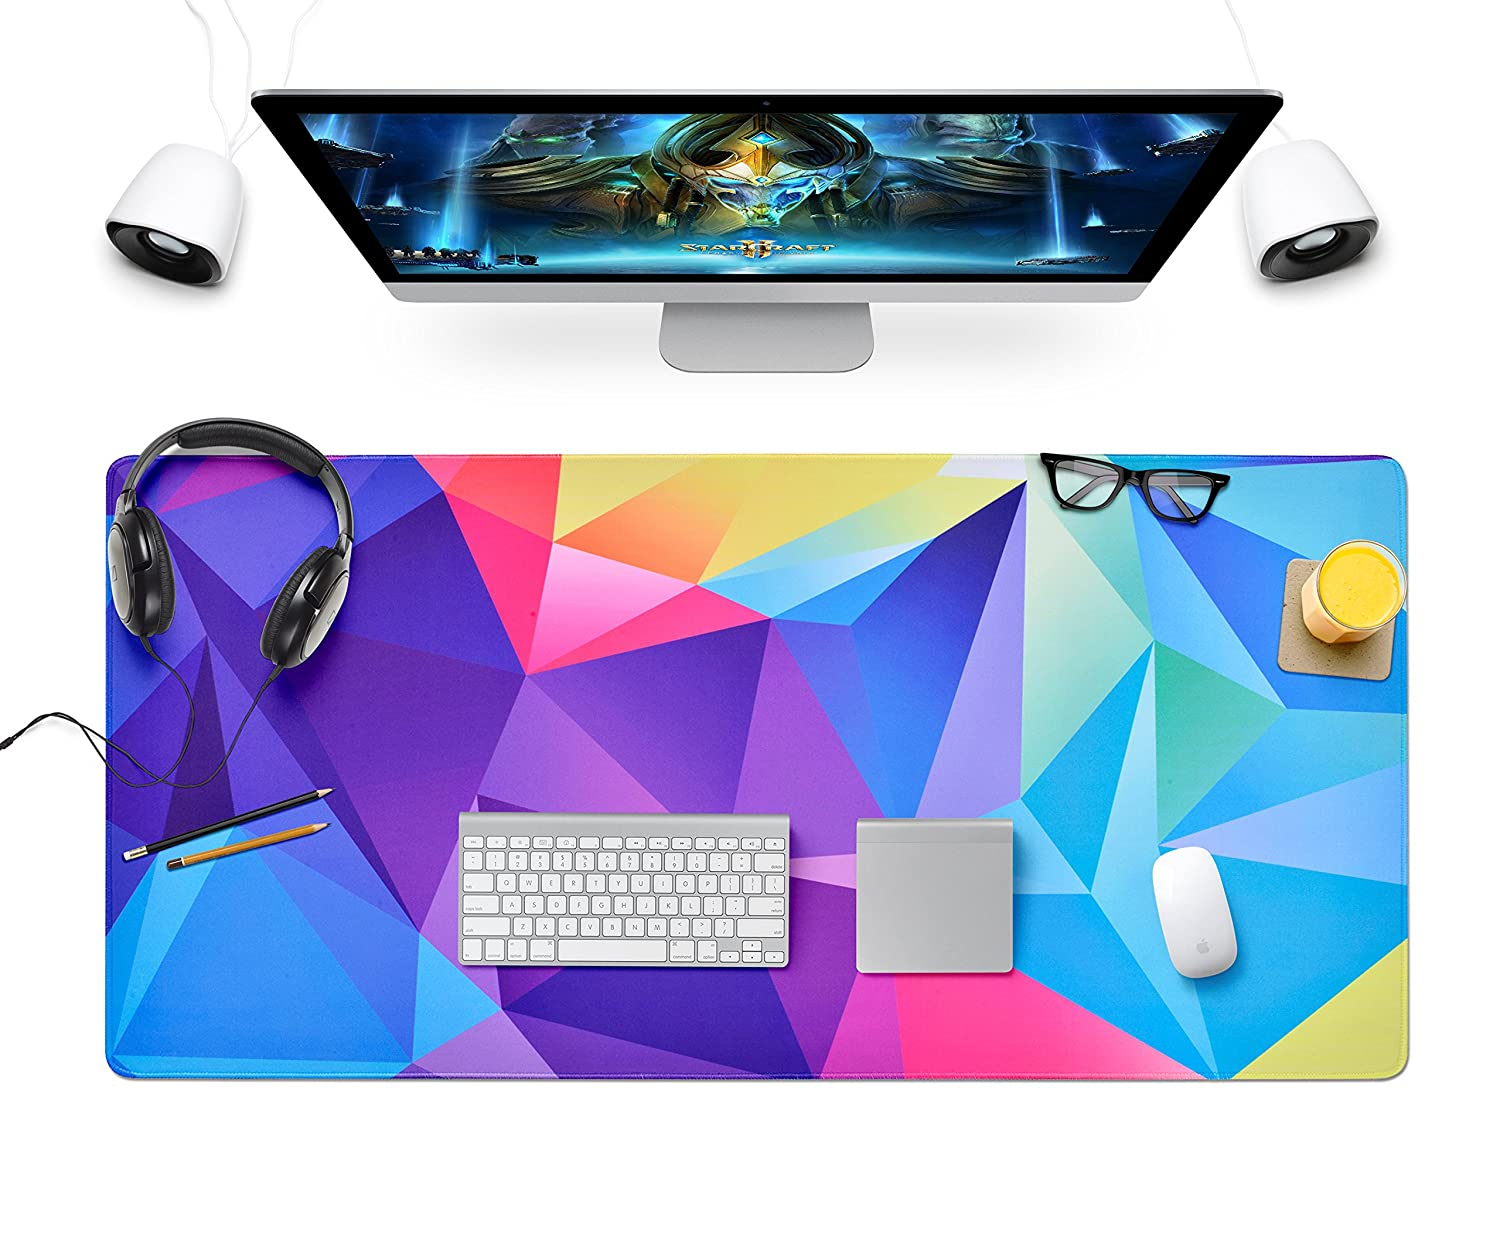 BLTech Large Gaming Mouse Pad Extended Mousepads Keyboard Pad Water-Resistant Desk Pad, Desk Writing Mat with Non-Slip Stitched Edges XXL(800×400×3mm)-Graphics Design